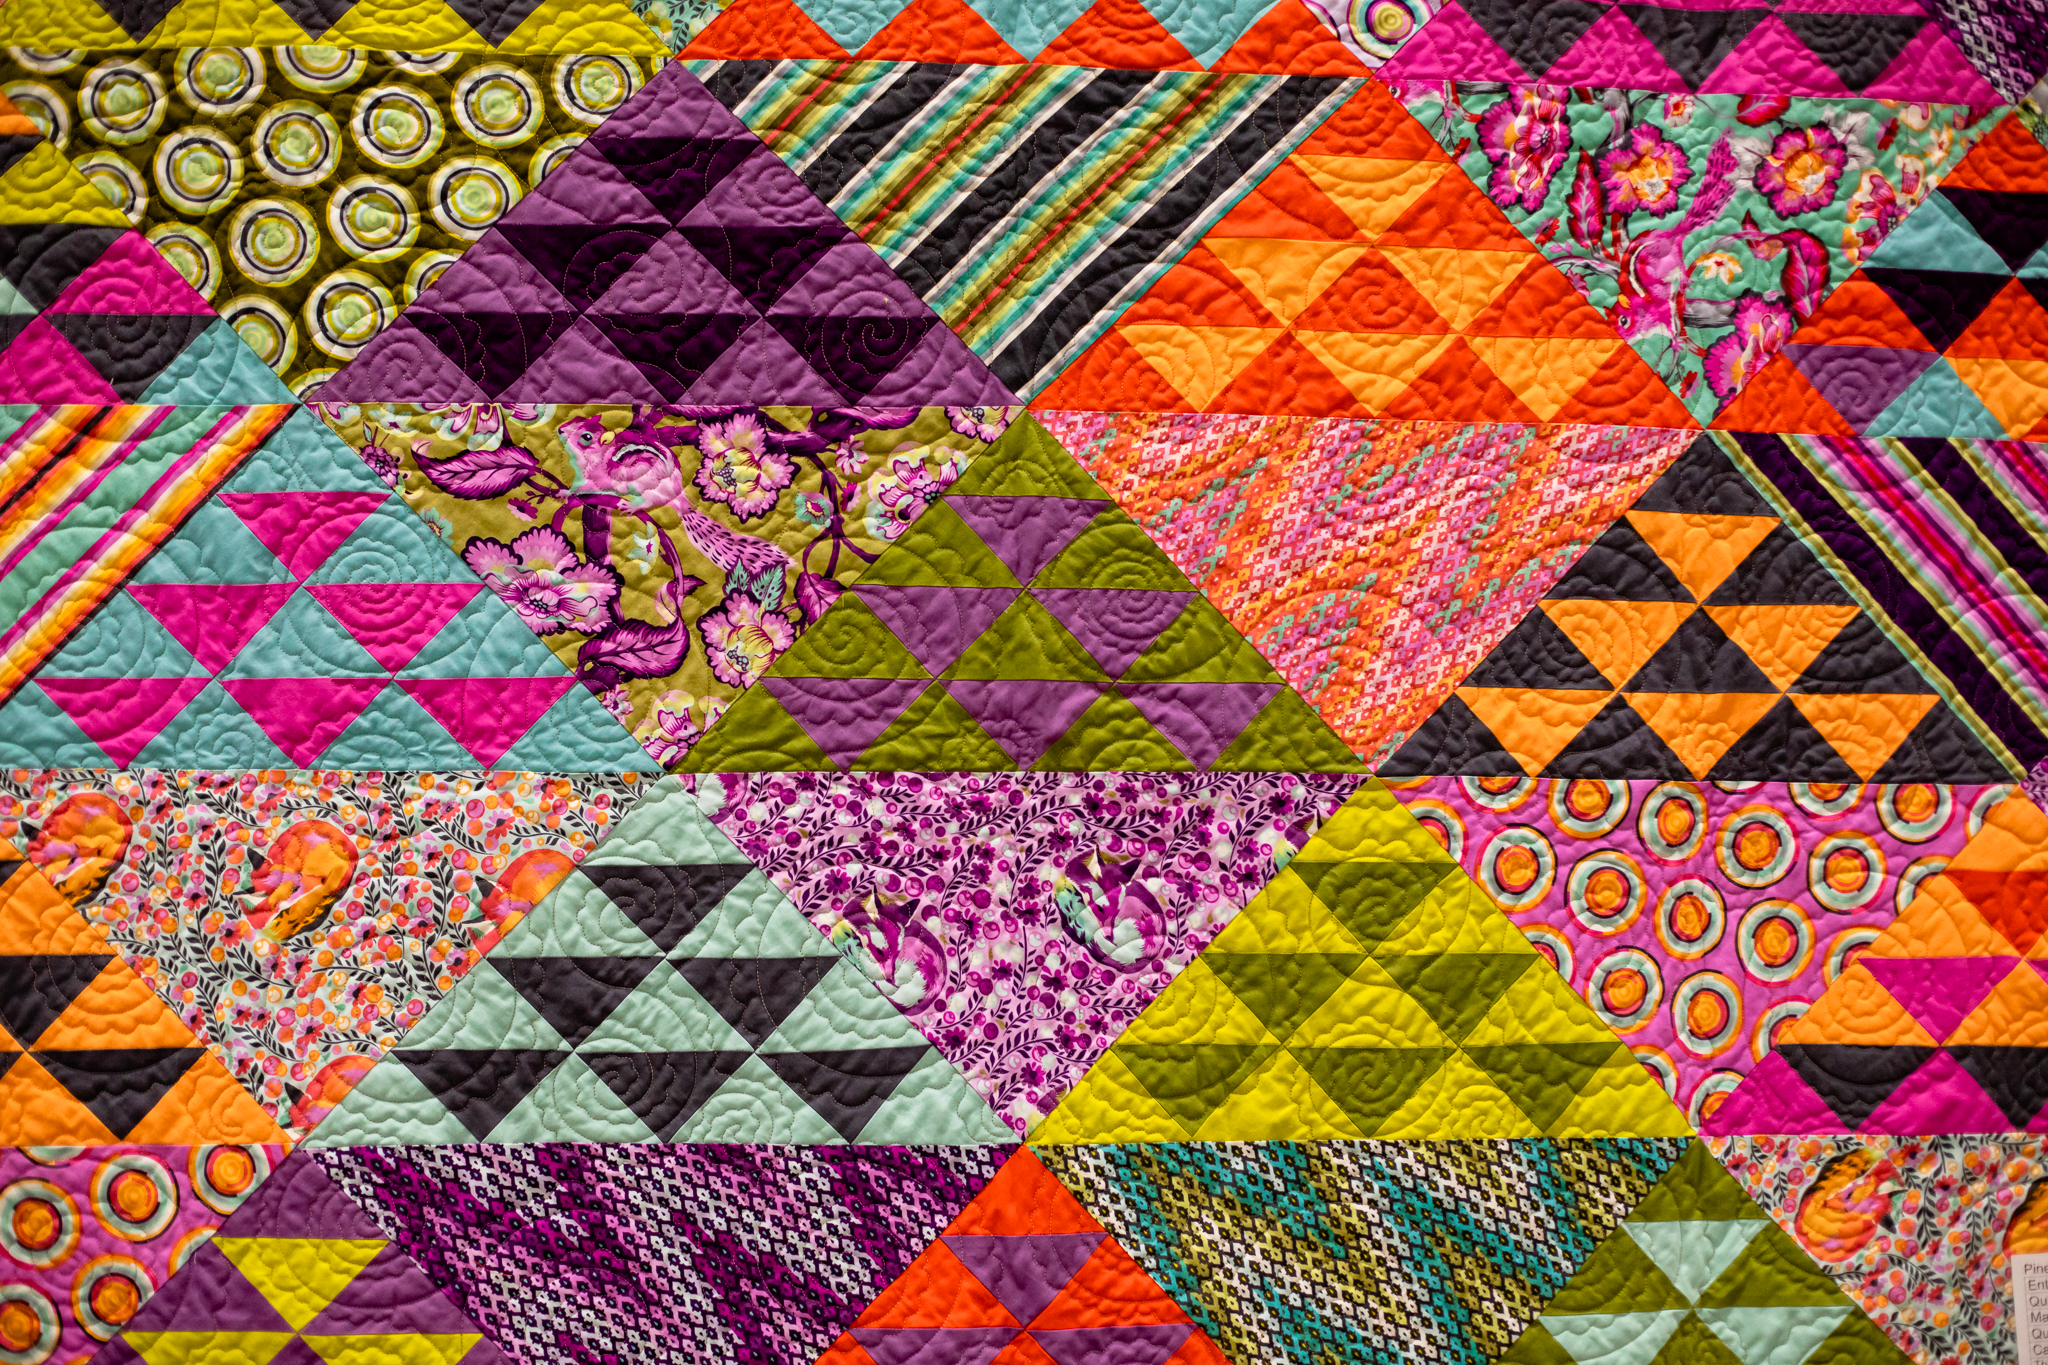 Pine Tree Quilt Show at the Nevada County Fairgrounds | Pine Tre